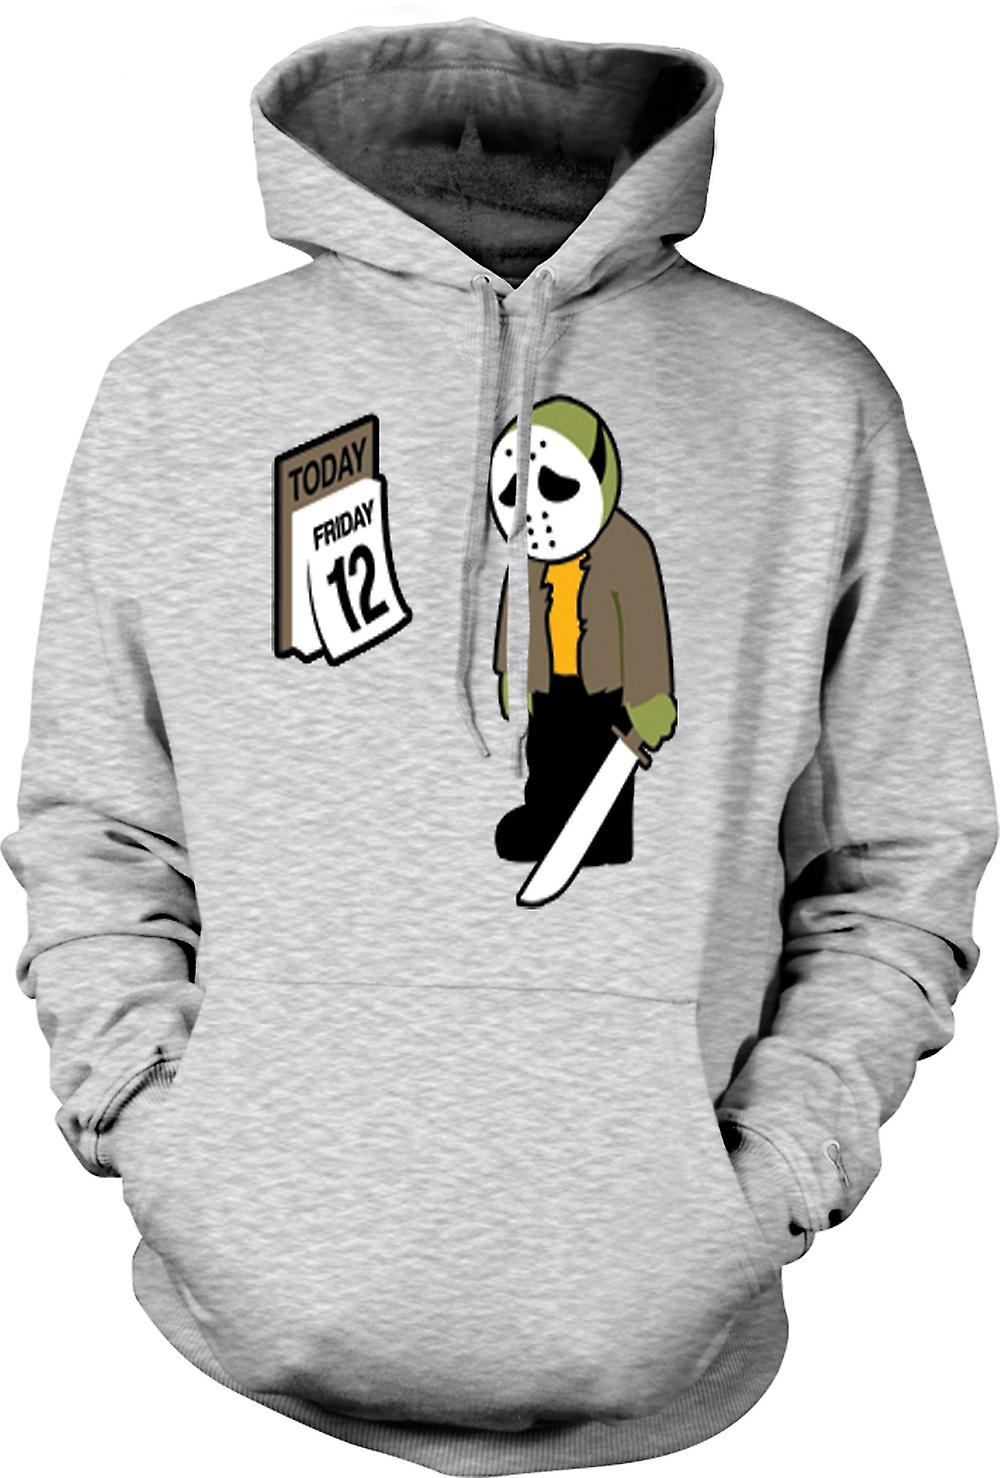 Mens Hoodie - Friday The 12th Jason Voorhees